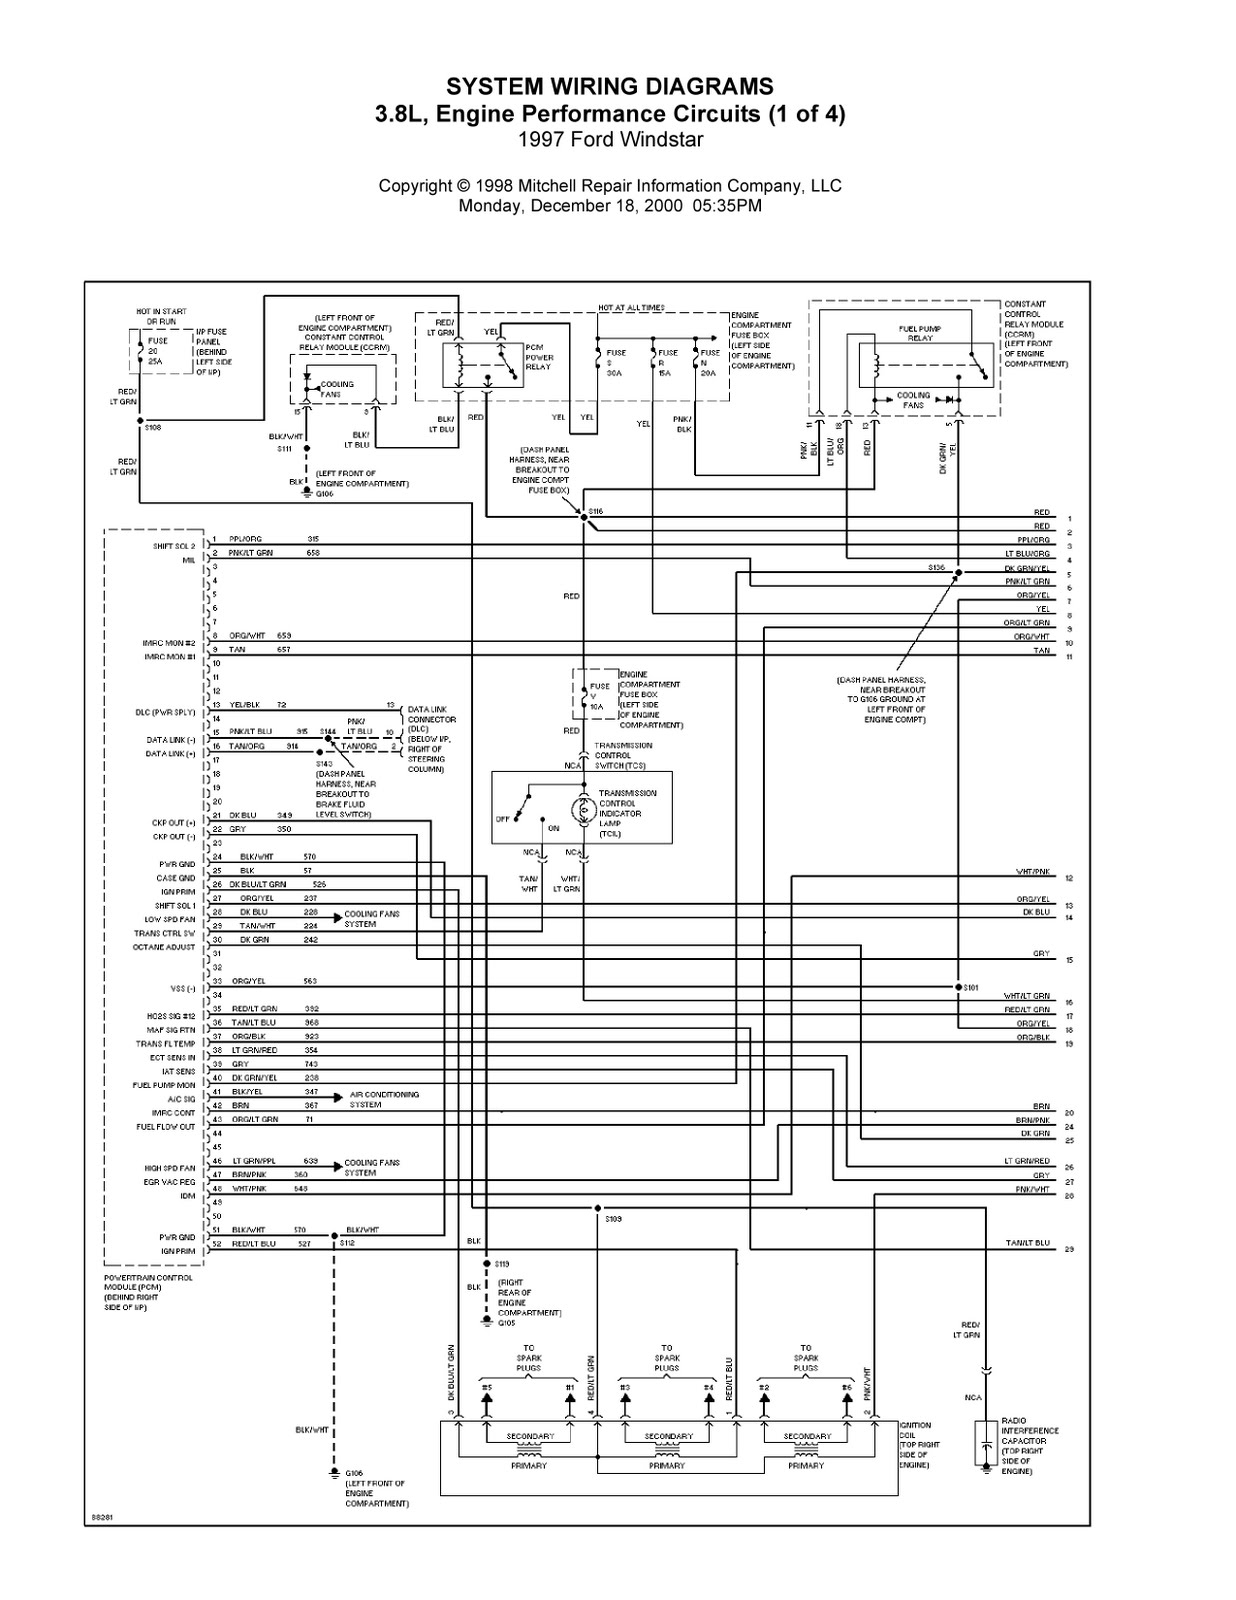 2000 ford windstar stereo wiring diagram 2000 windstar radio wiring diagram ford windstar radio wiring diagram